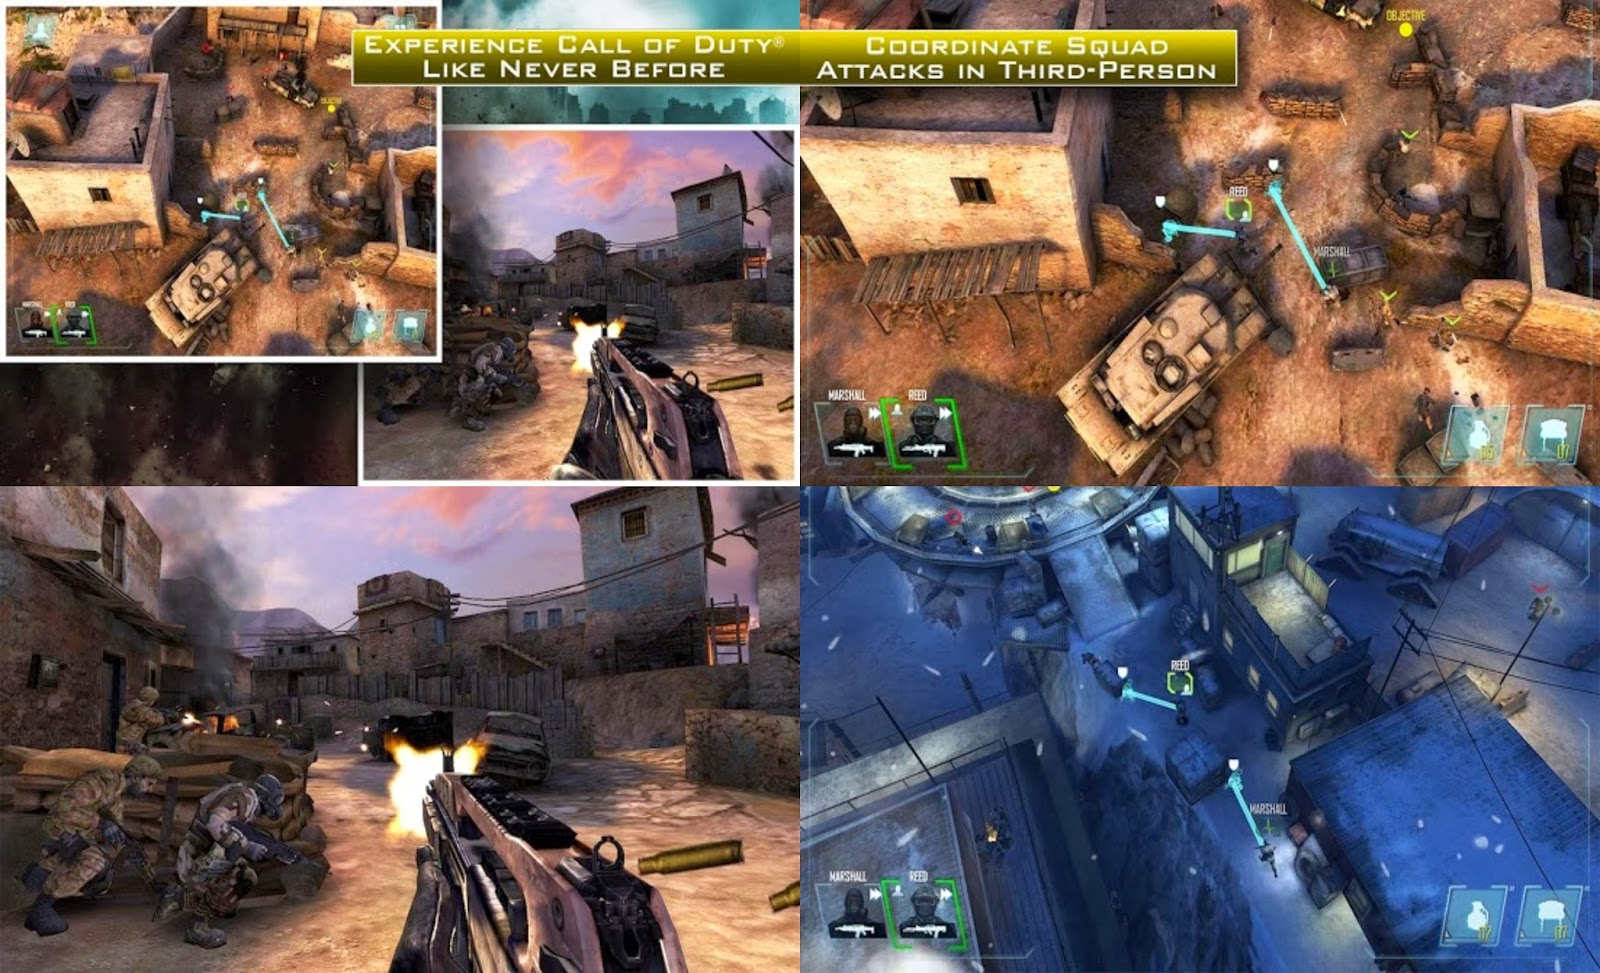 Download Game Call Of Duty For Android Apk+data - d0wnloadproduct's blog